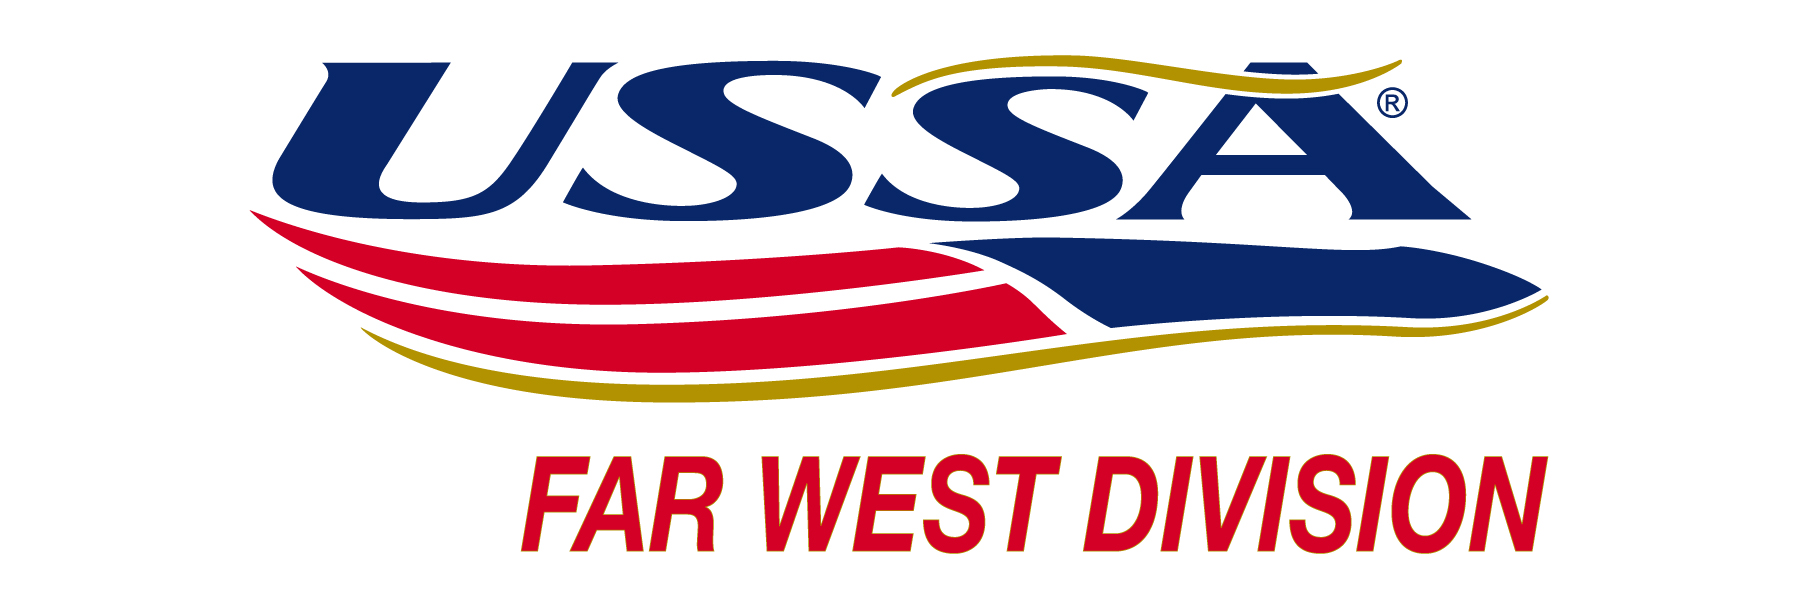 USSA Far West Division